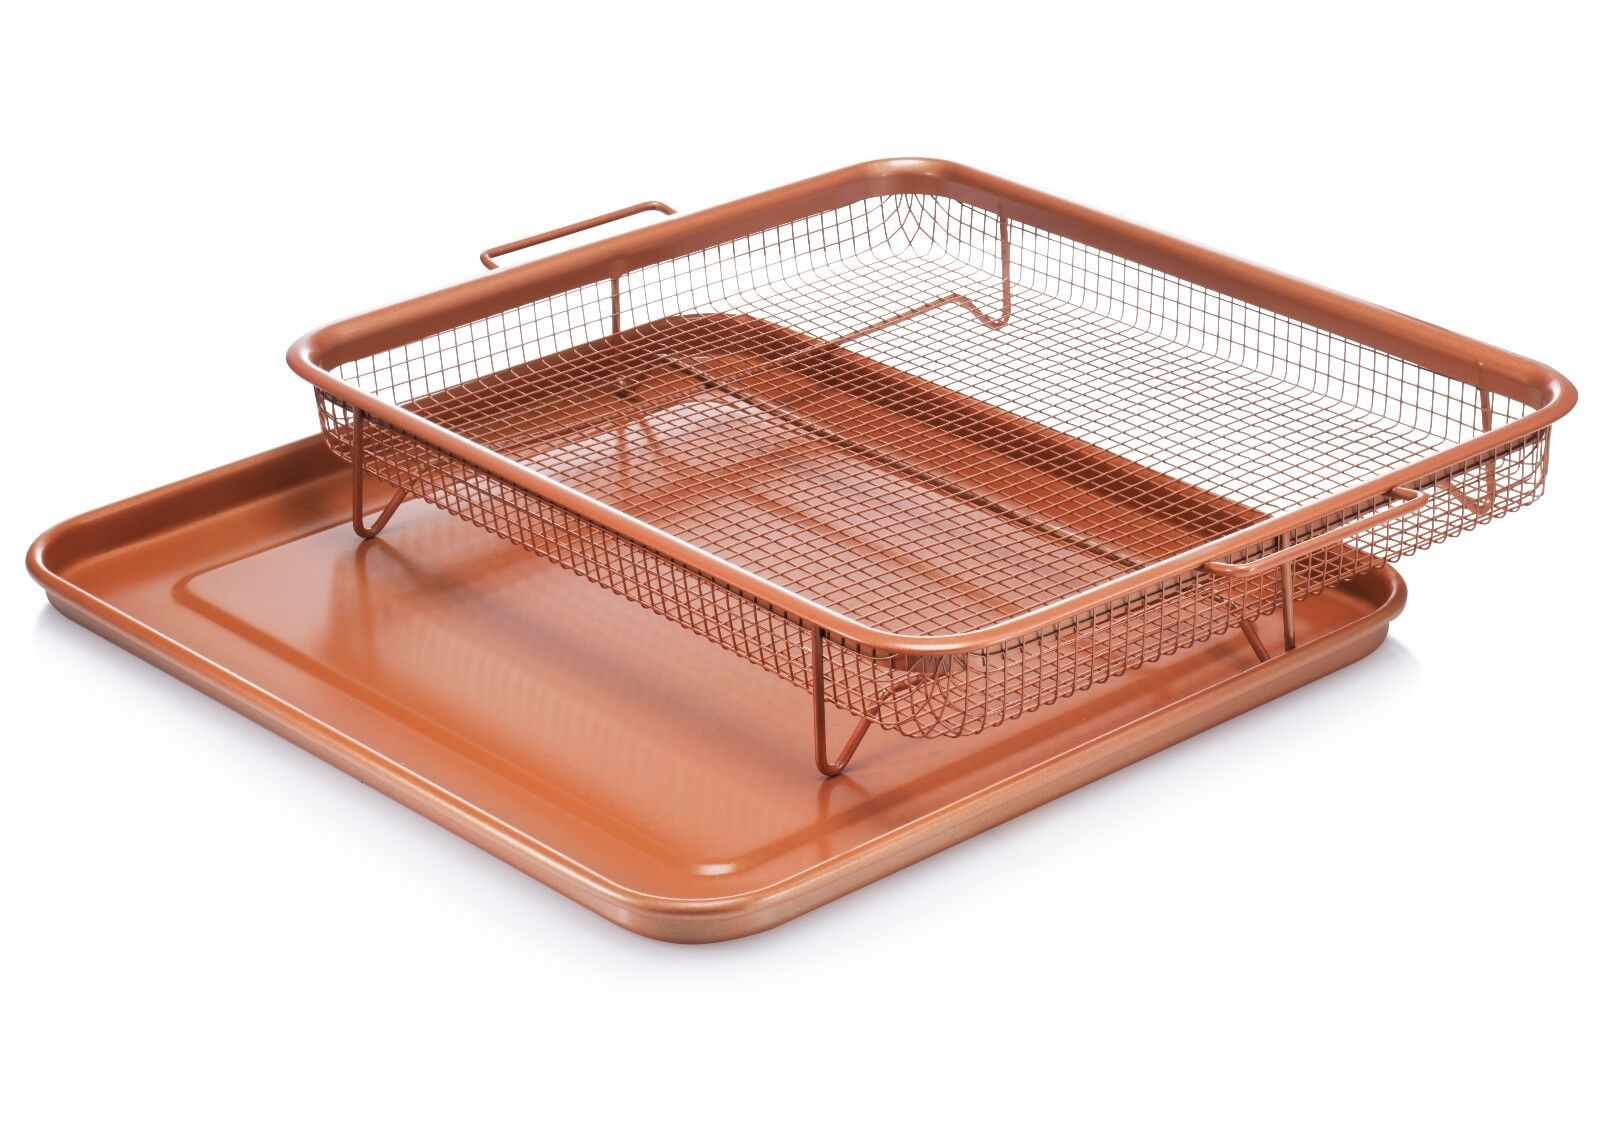 Gotham Steel Copper Crisper Tray - AIR FRY IN YOUR OVEN - As Seen on TV - NEW! 2